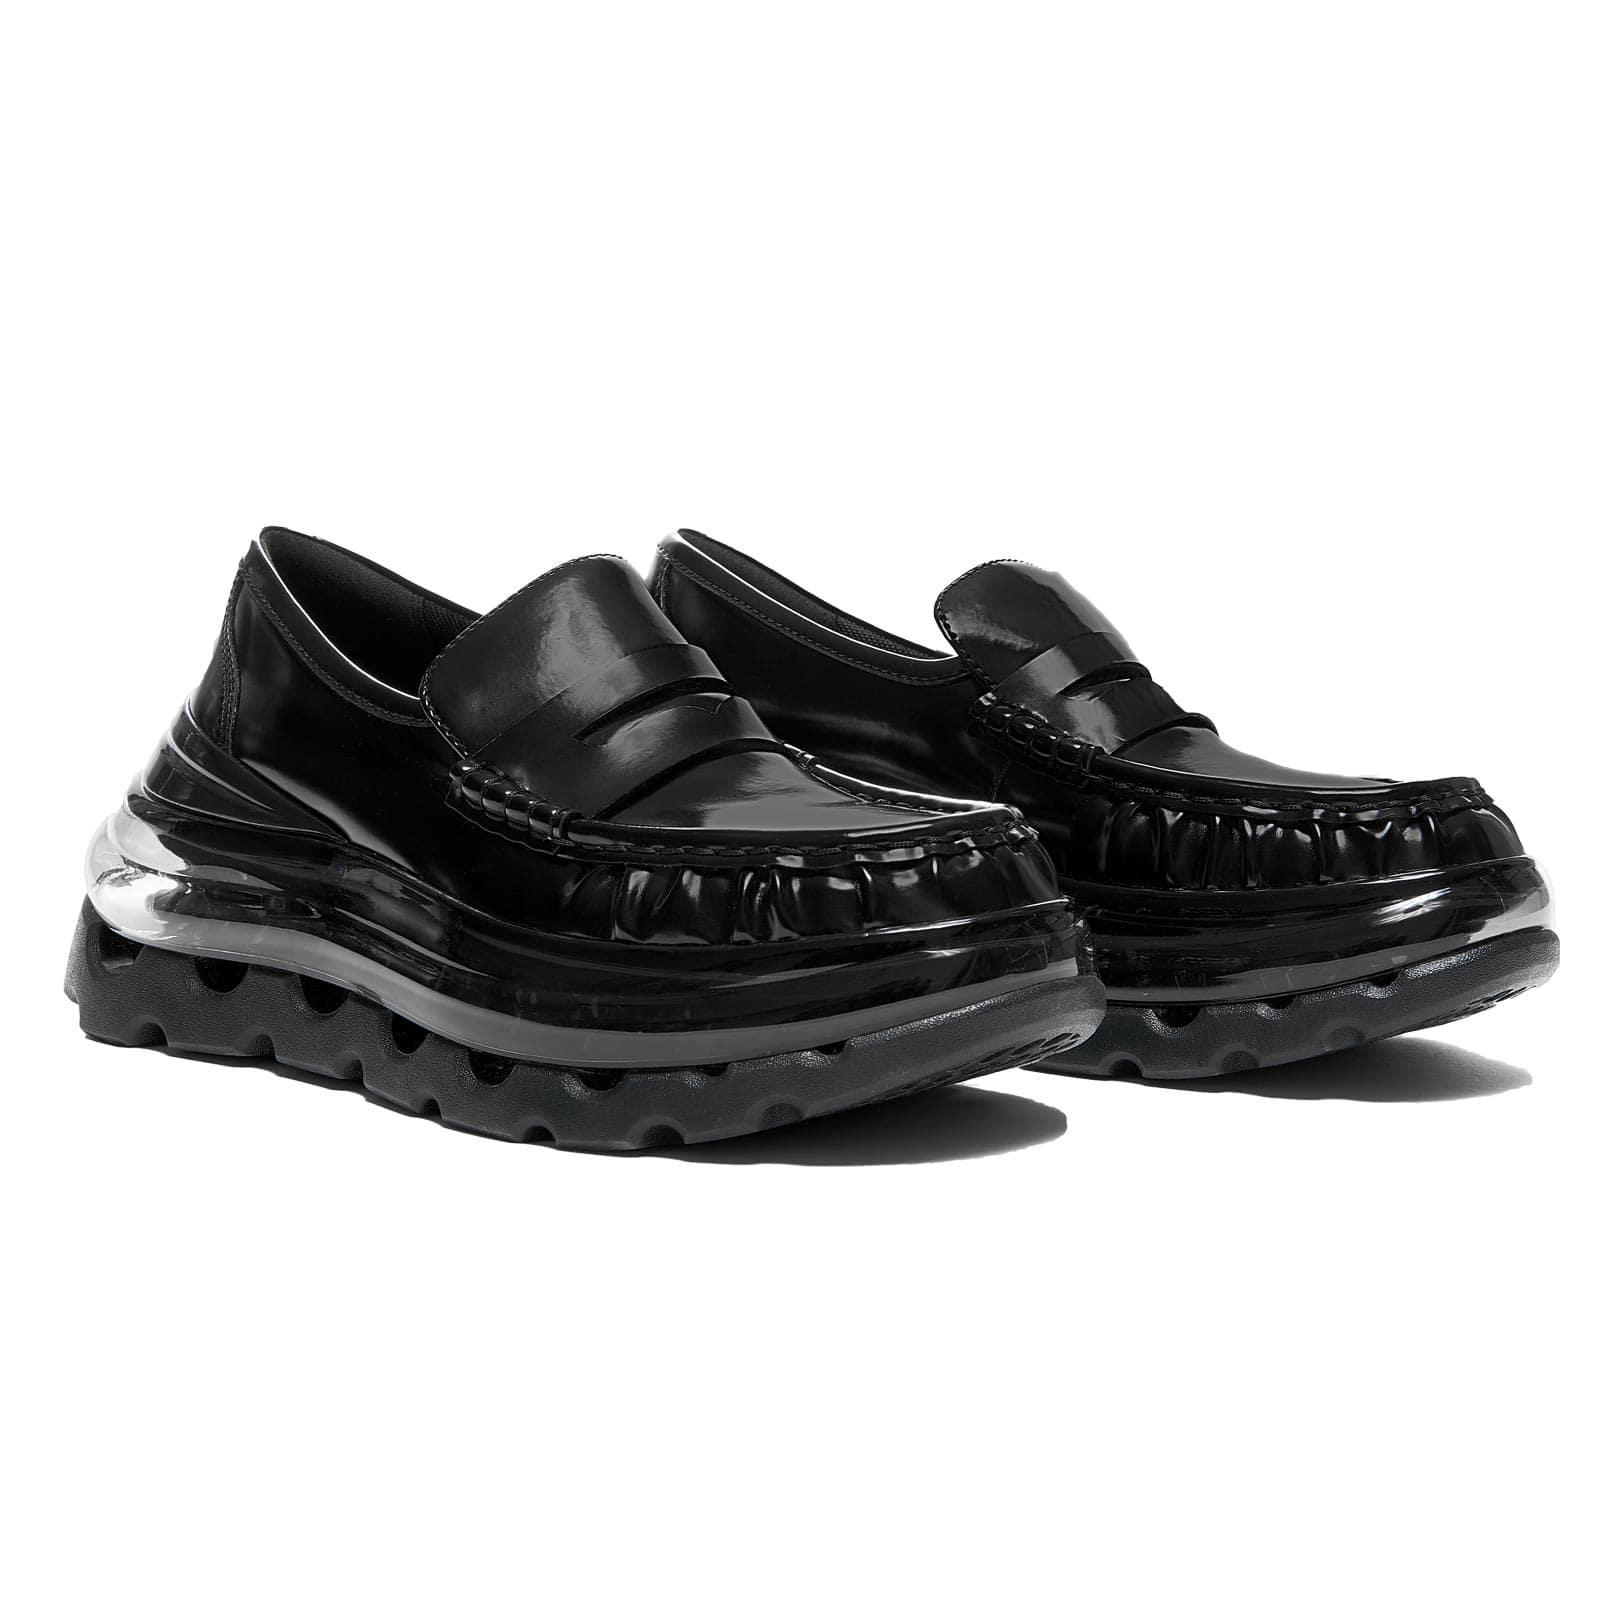 LOAF'AIR BLACK Classic Hybrid Sneaker Loafers